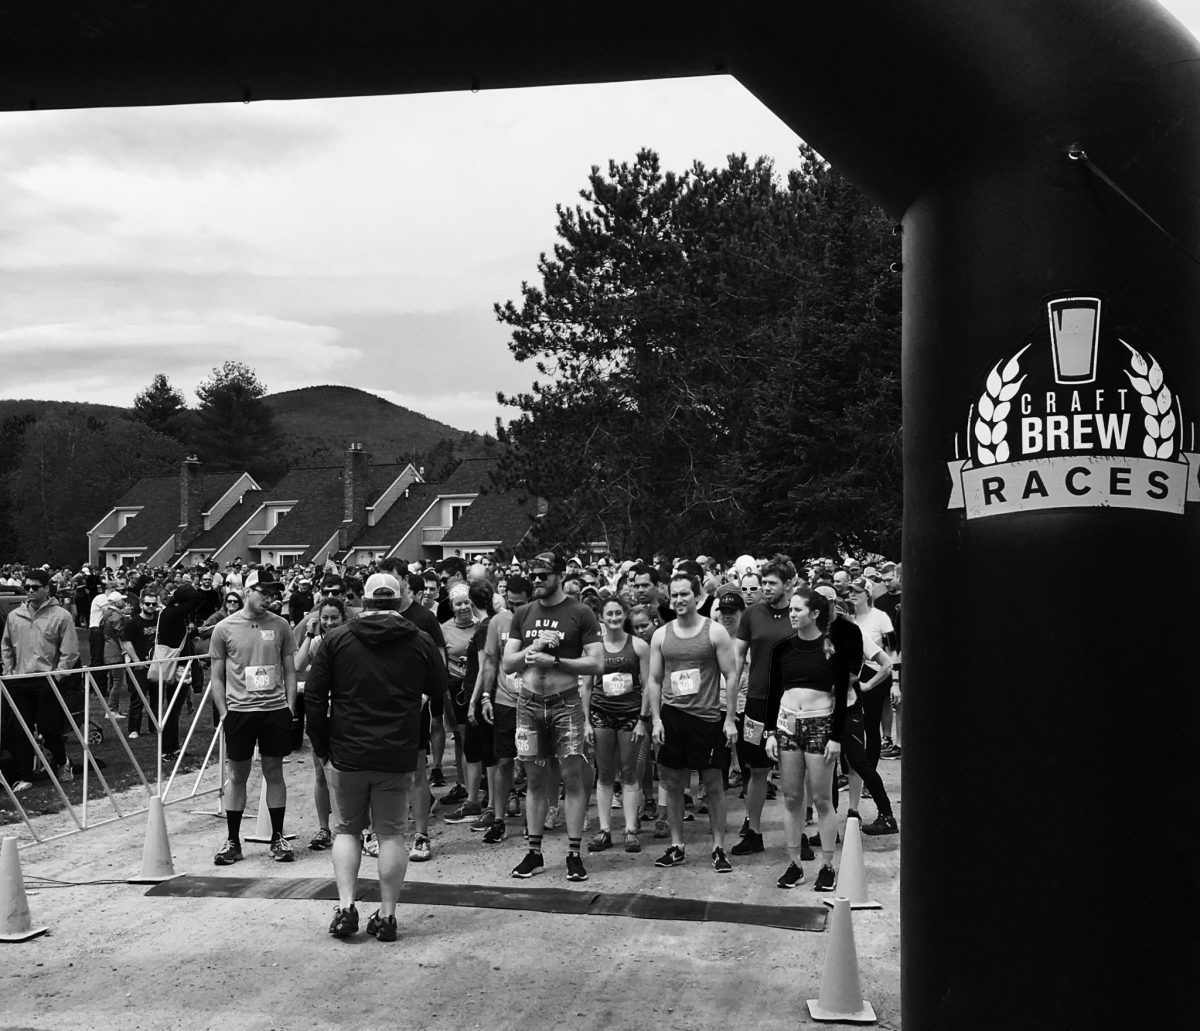 Craft Brew Races - Stowe 2018